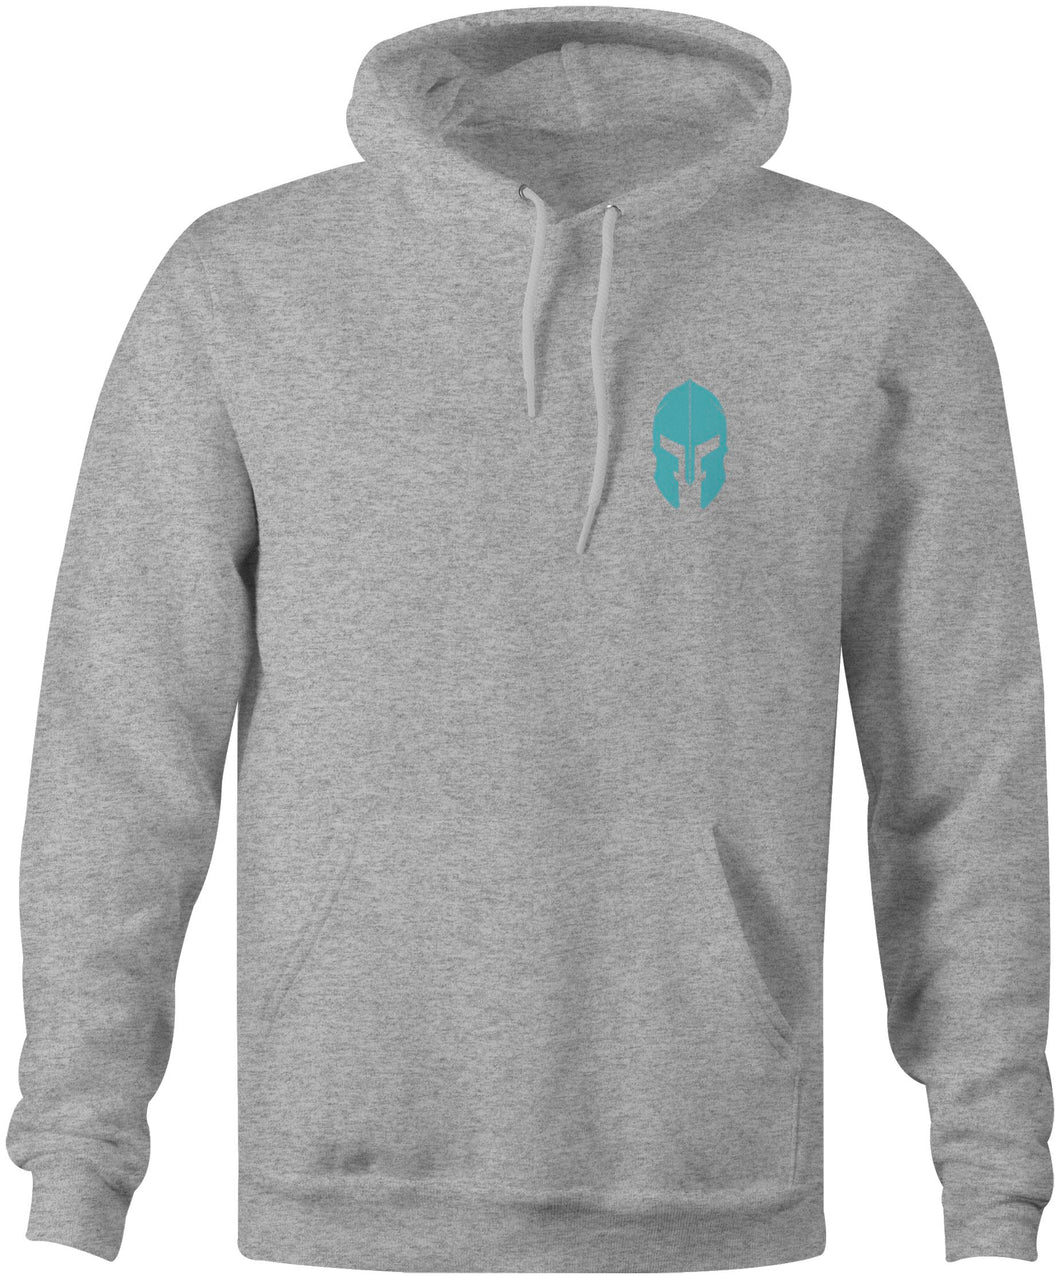 Hendeca Gridiron Double Sided Logo Hoodie